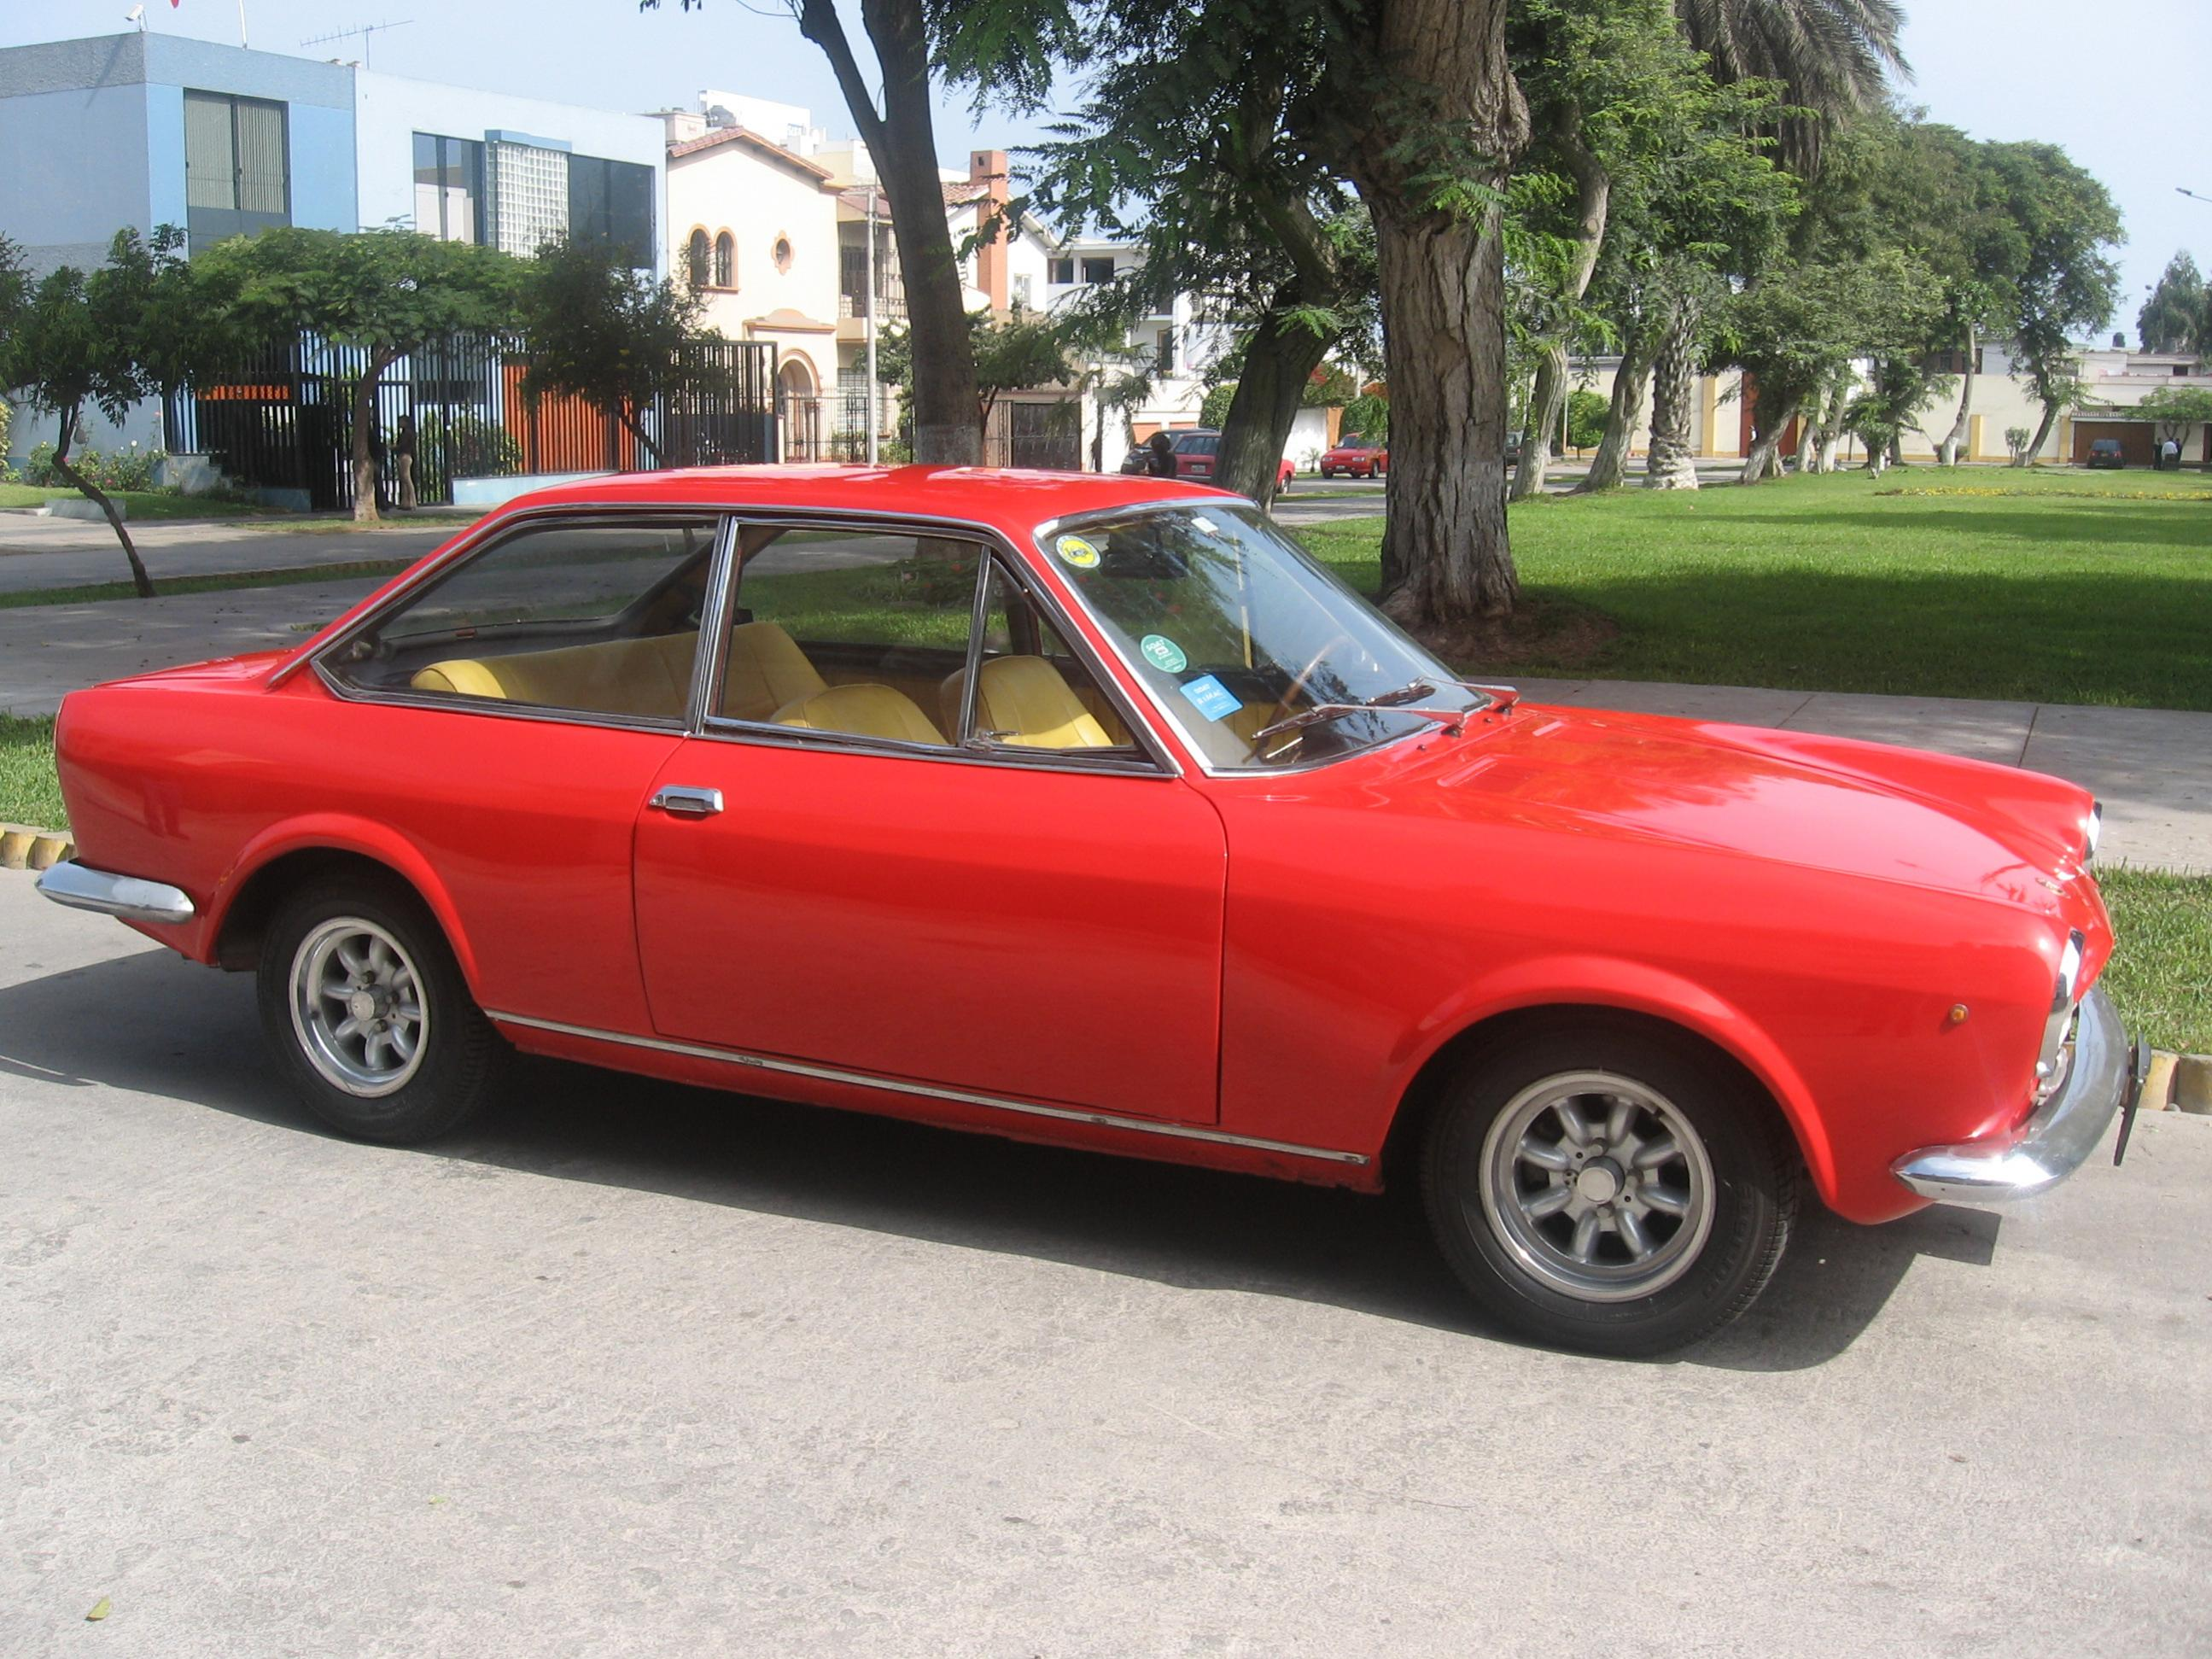 fiat 124 sport coupe photos news reviews specs car listings. Black Bedroom Furniture Sets. Home Design Ideas